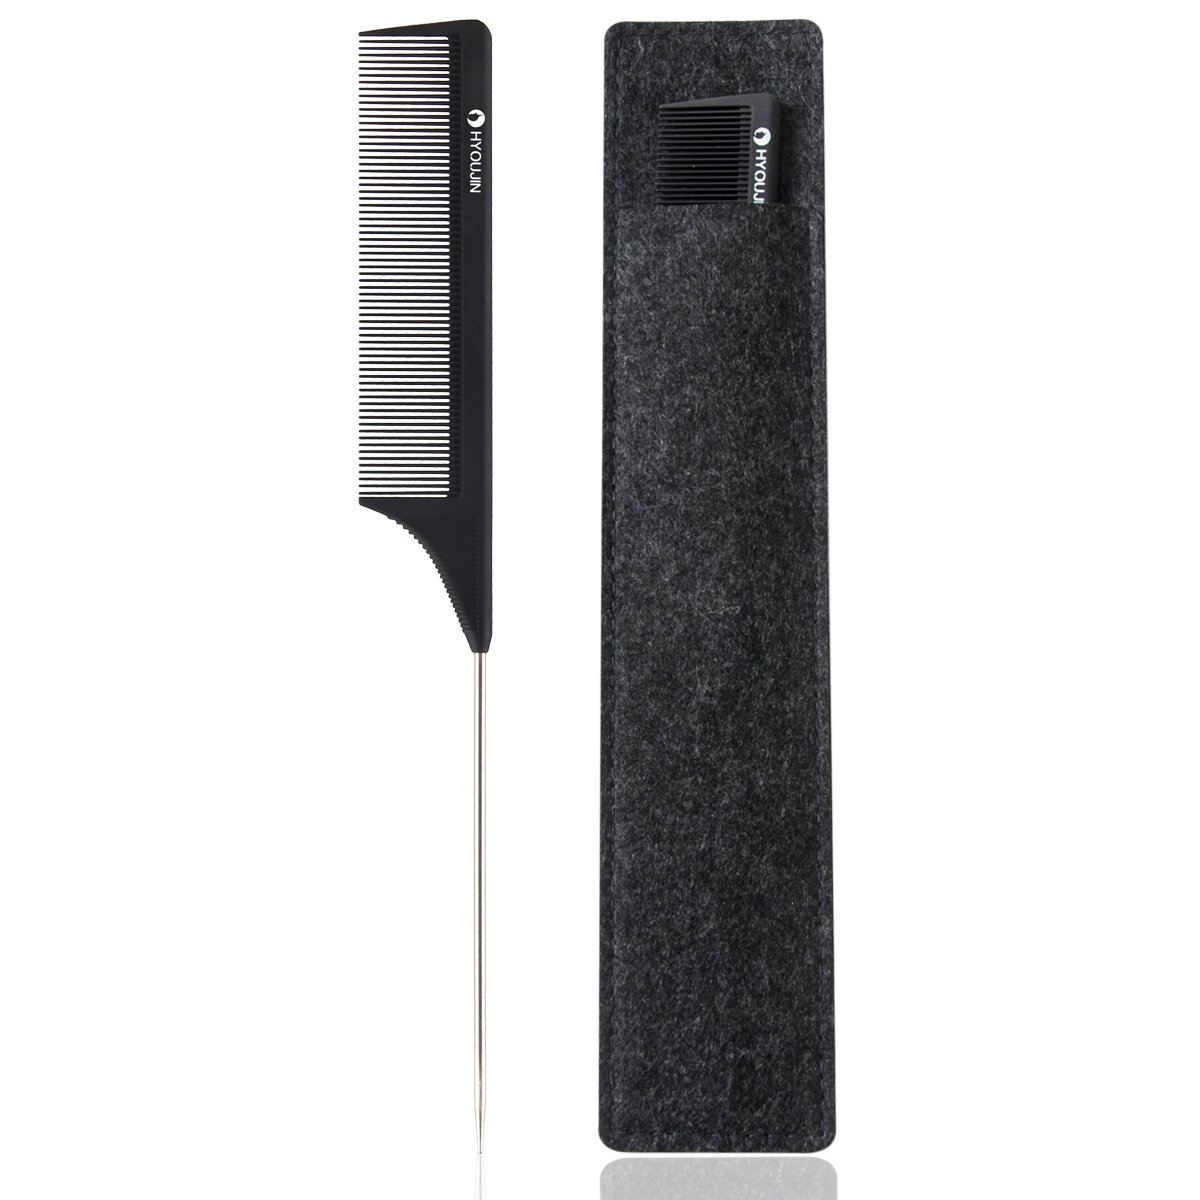 HYOUJIN 608 Rattail Comb Pintail Comb Carbon Comb Teasing Comb Metal Parting Comb For All Hairstyling Black